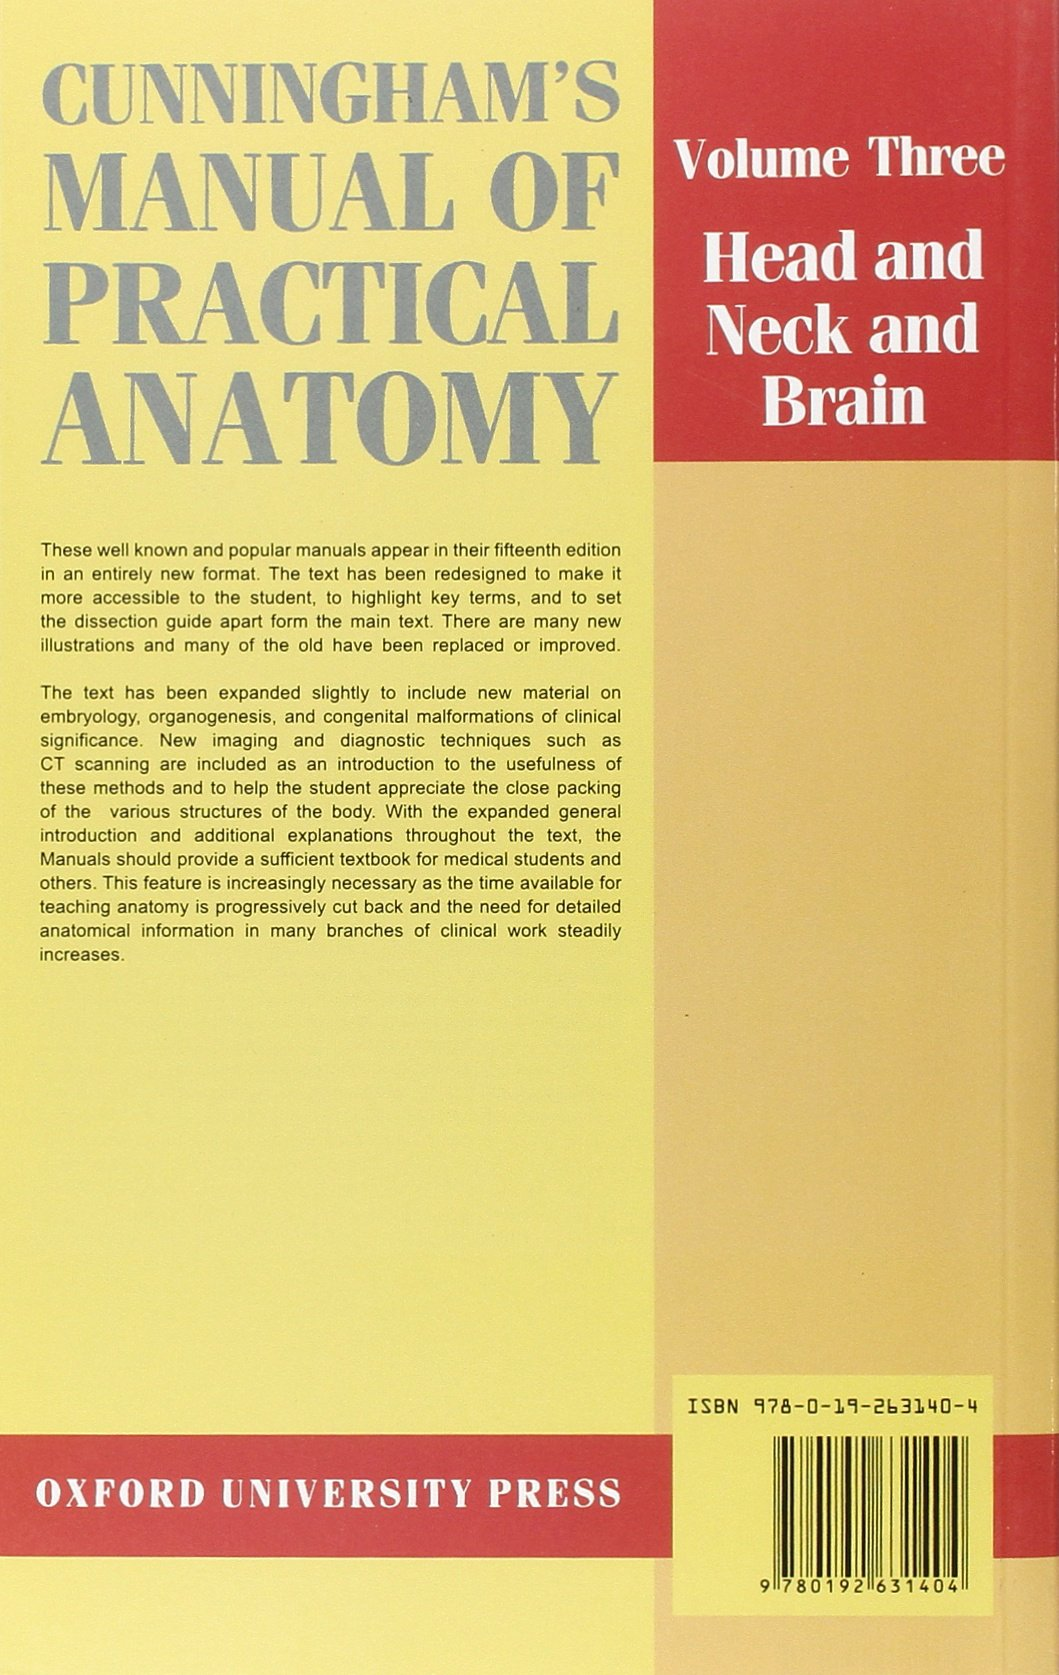 Buy Cunningham's Manual of Practical Anatomy: Volume 3. Head and Neck and  Brain: 003 (Oxford Medical Publications) Book Online at Low Prices in India  ...